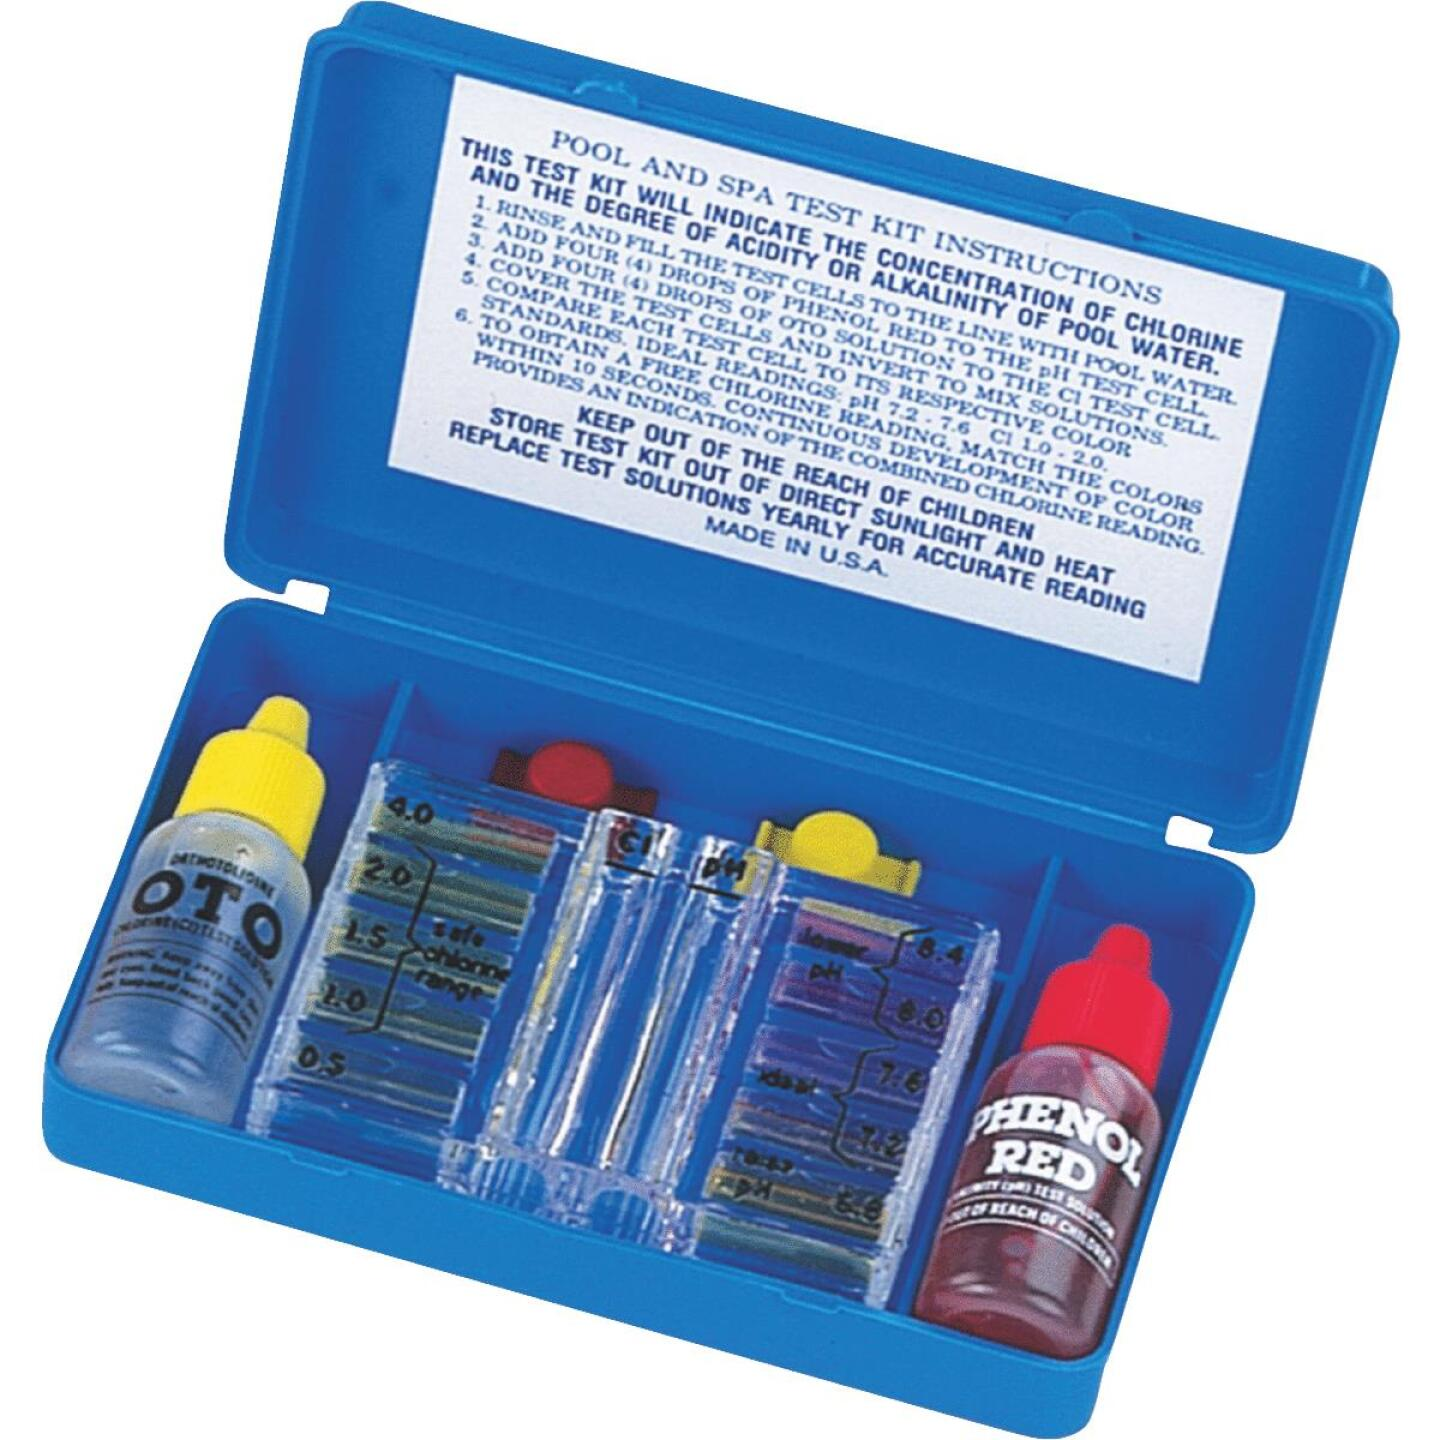 JED Pool and Spa Test Kit Image 1